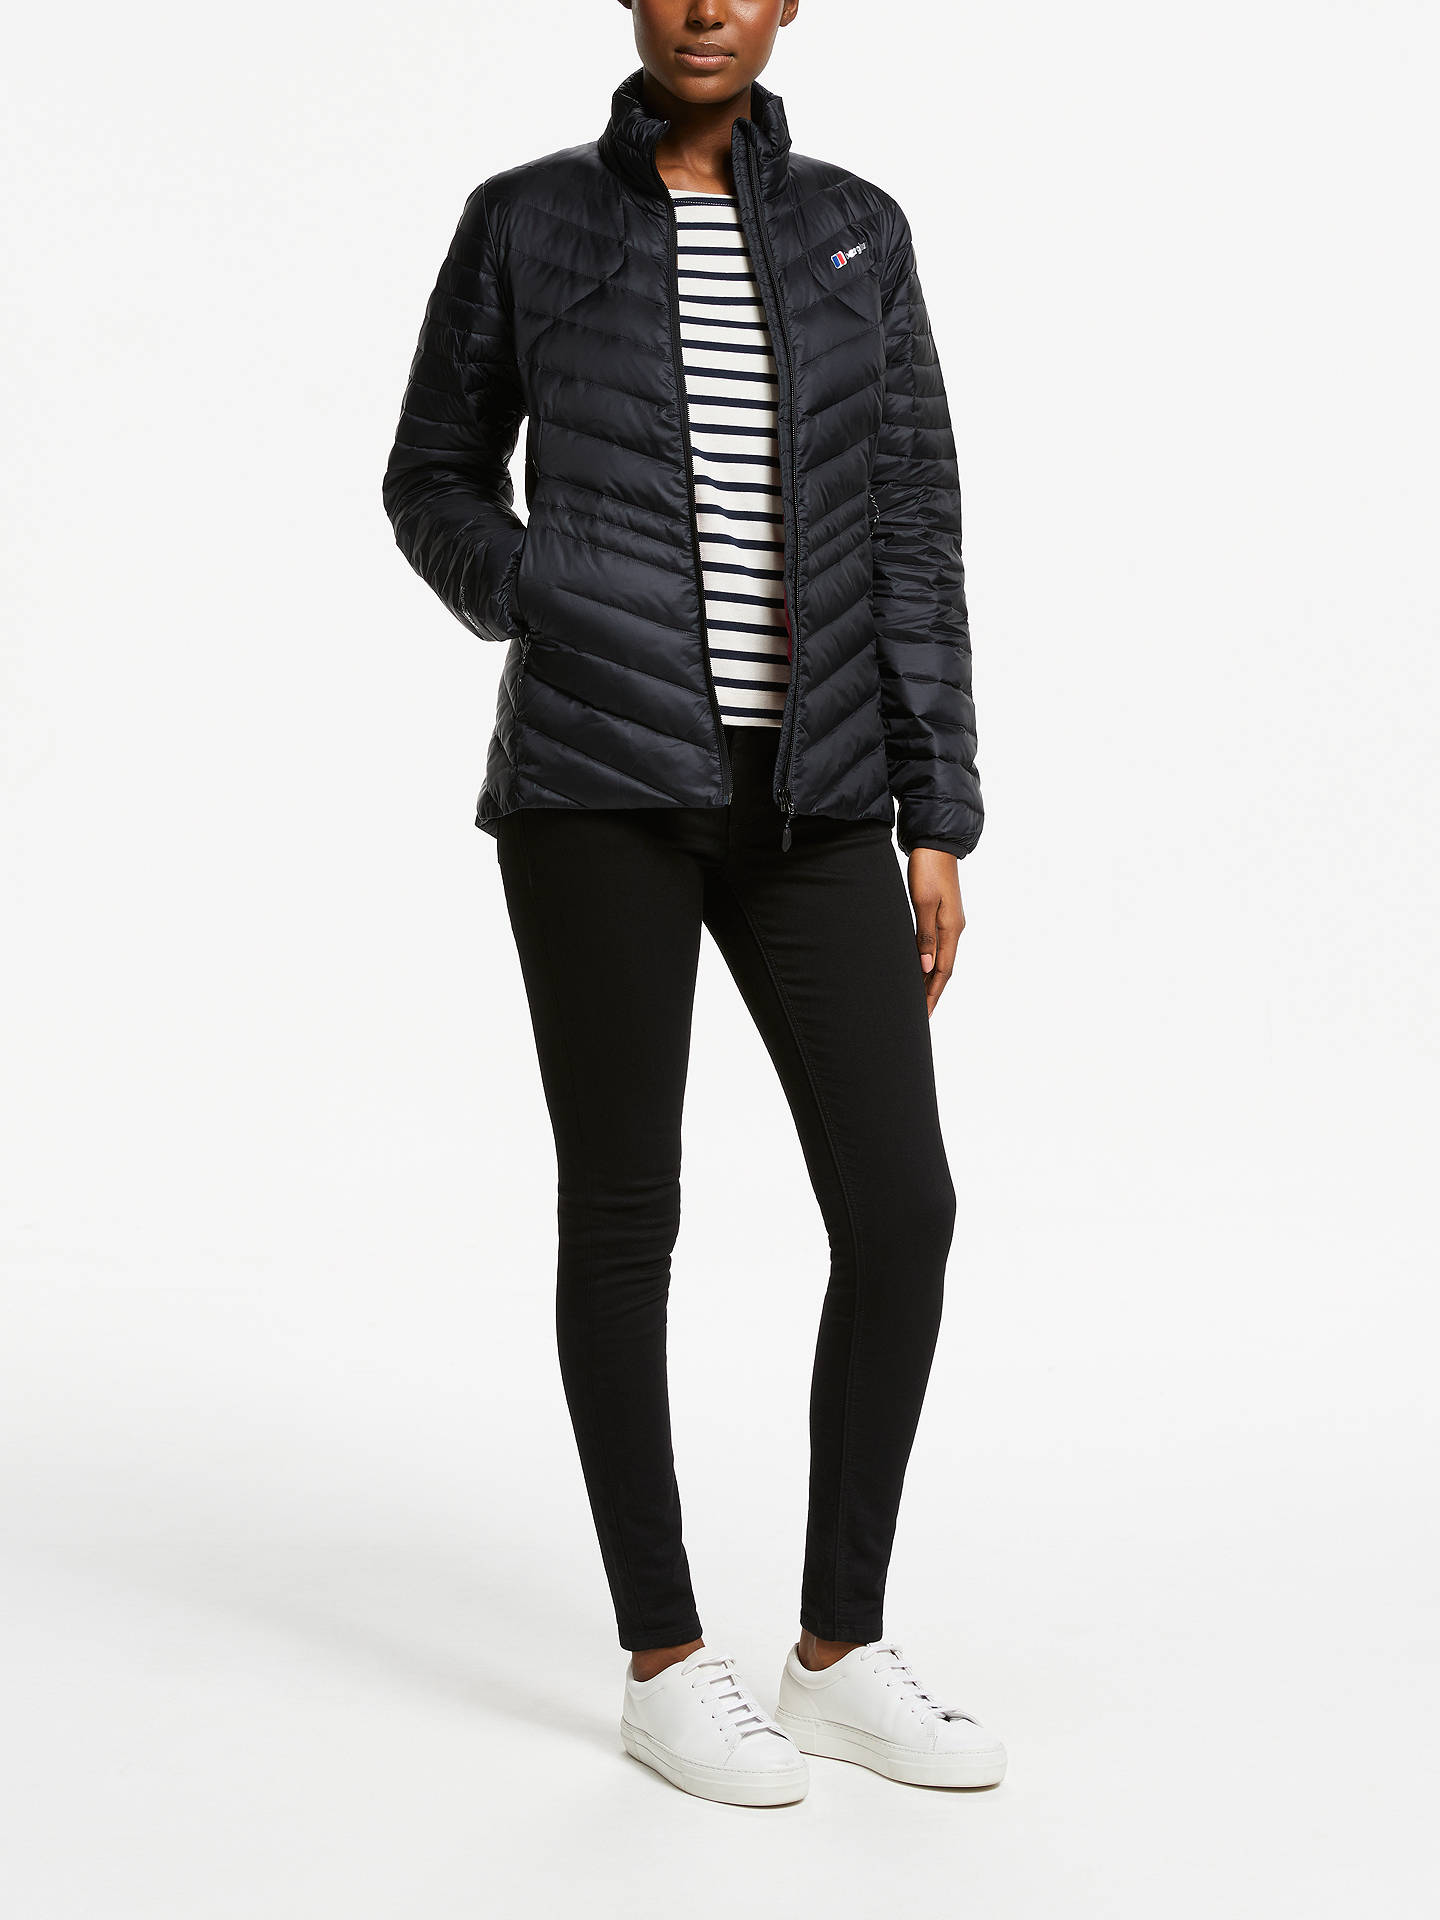 BuyBerghaus Tephra Reflect Women's Jacket, Black, 8 Online at johnlewis.com